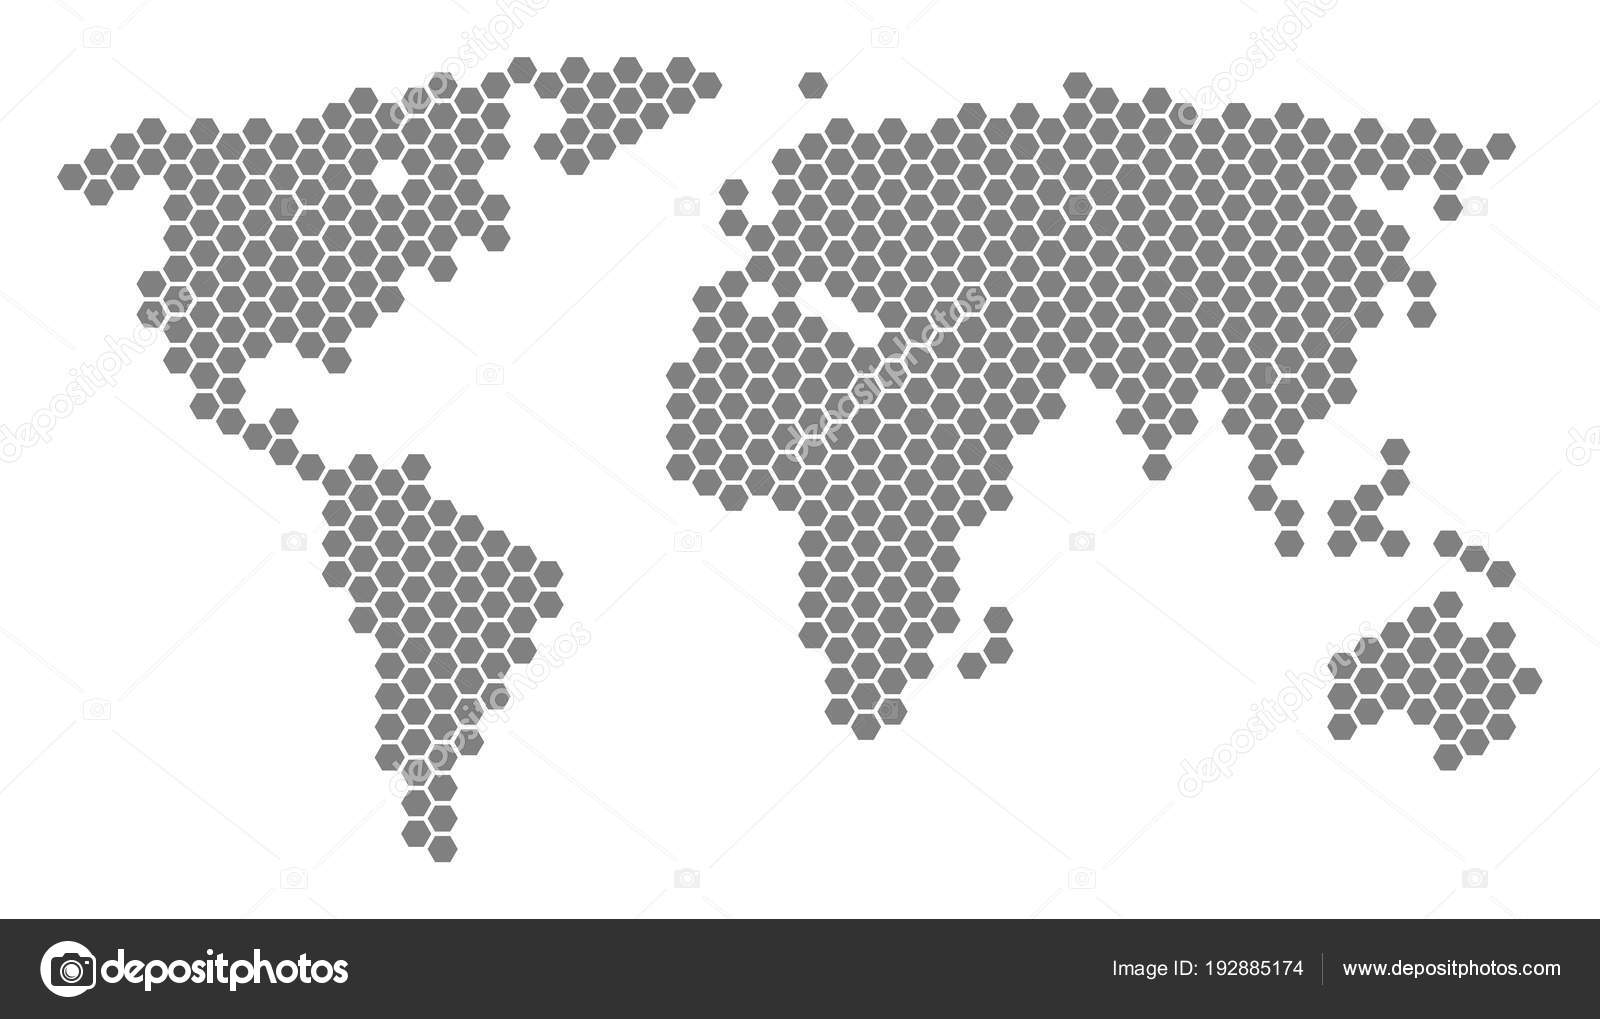 Gray hexagon world map stock vector ahasoft 192885174 grey hexagonal world map vector geographic map in gray color on a white background vector composition of world map constructed of hexagonal items gumiabroncs Gallery